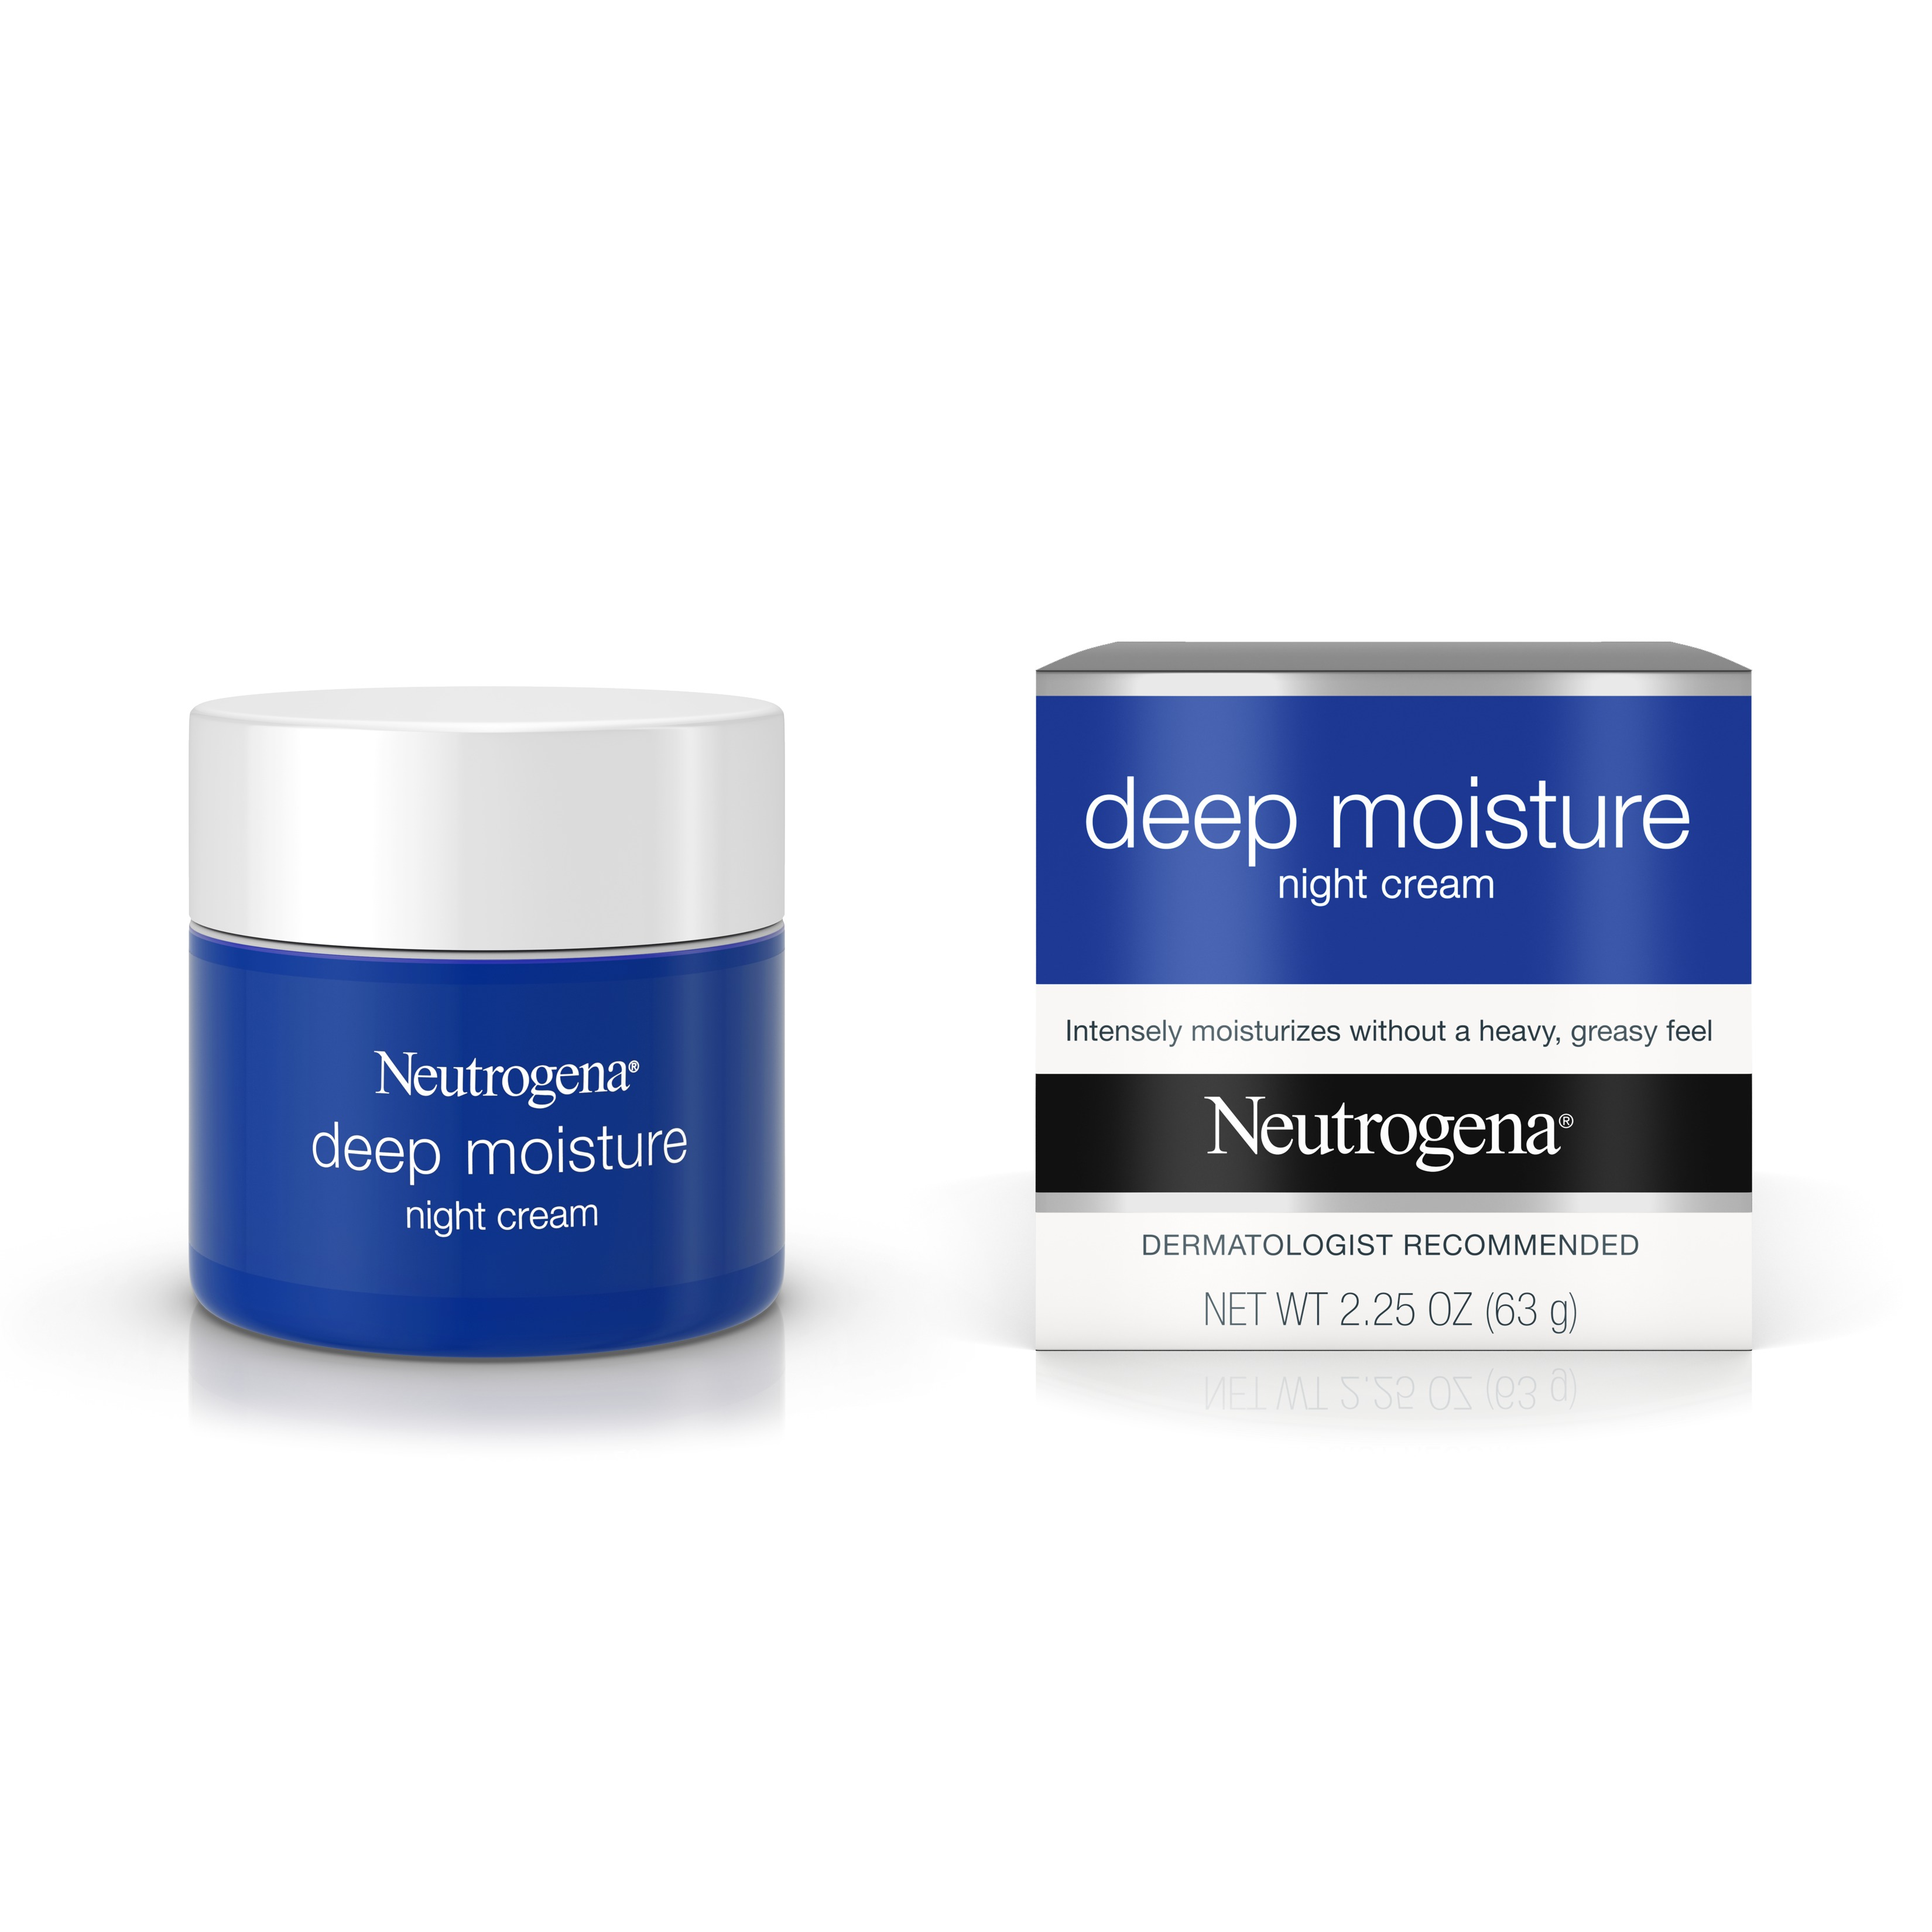 Neutrogena Deep Moisture Night Cream, Glycerin & Vitamin D3, 2.25 oz